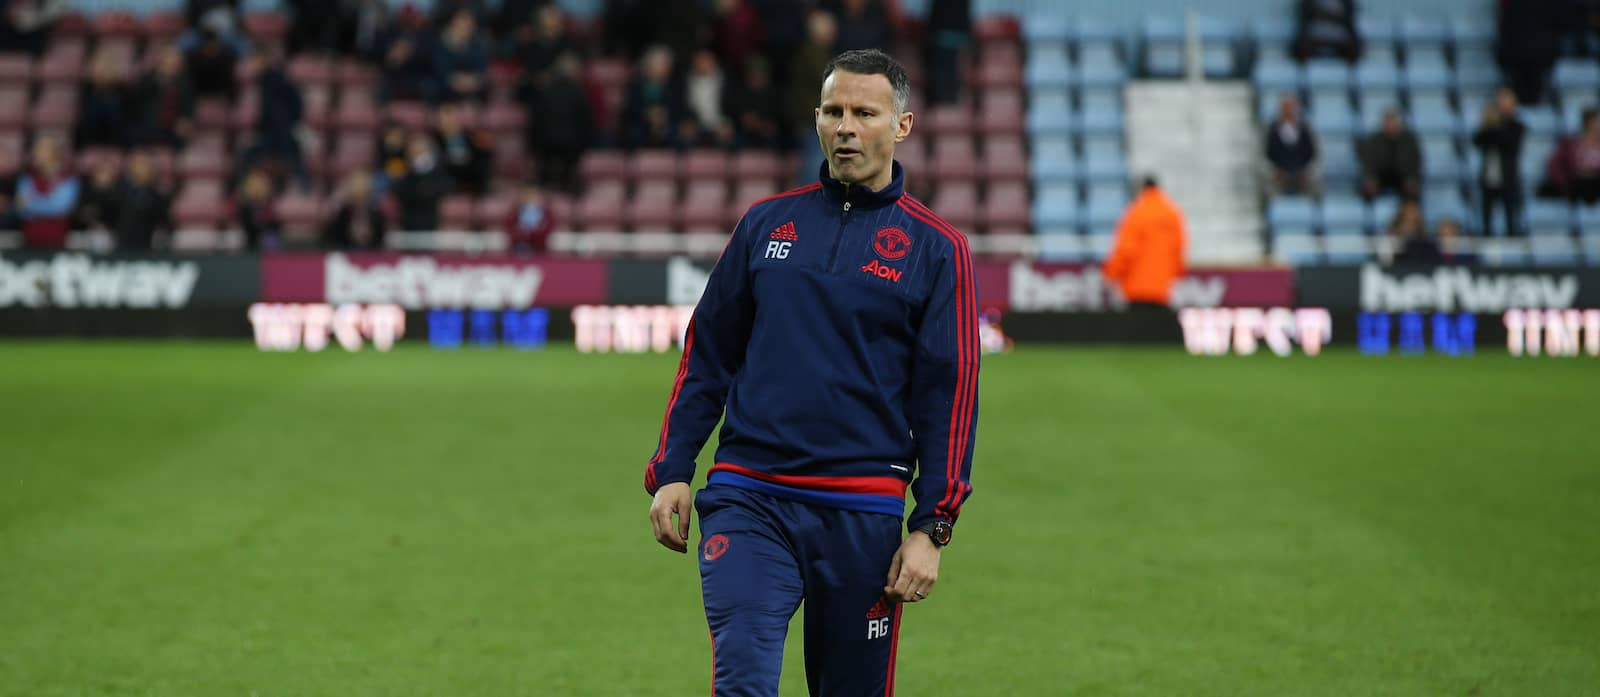 Manchester United have not offered Ryan Giggs a new role – report